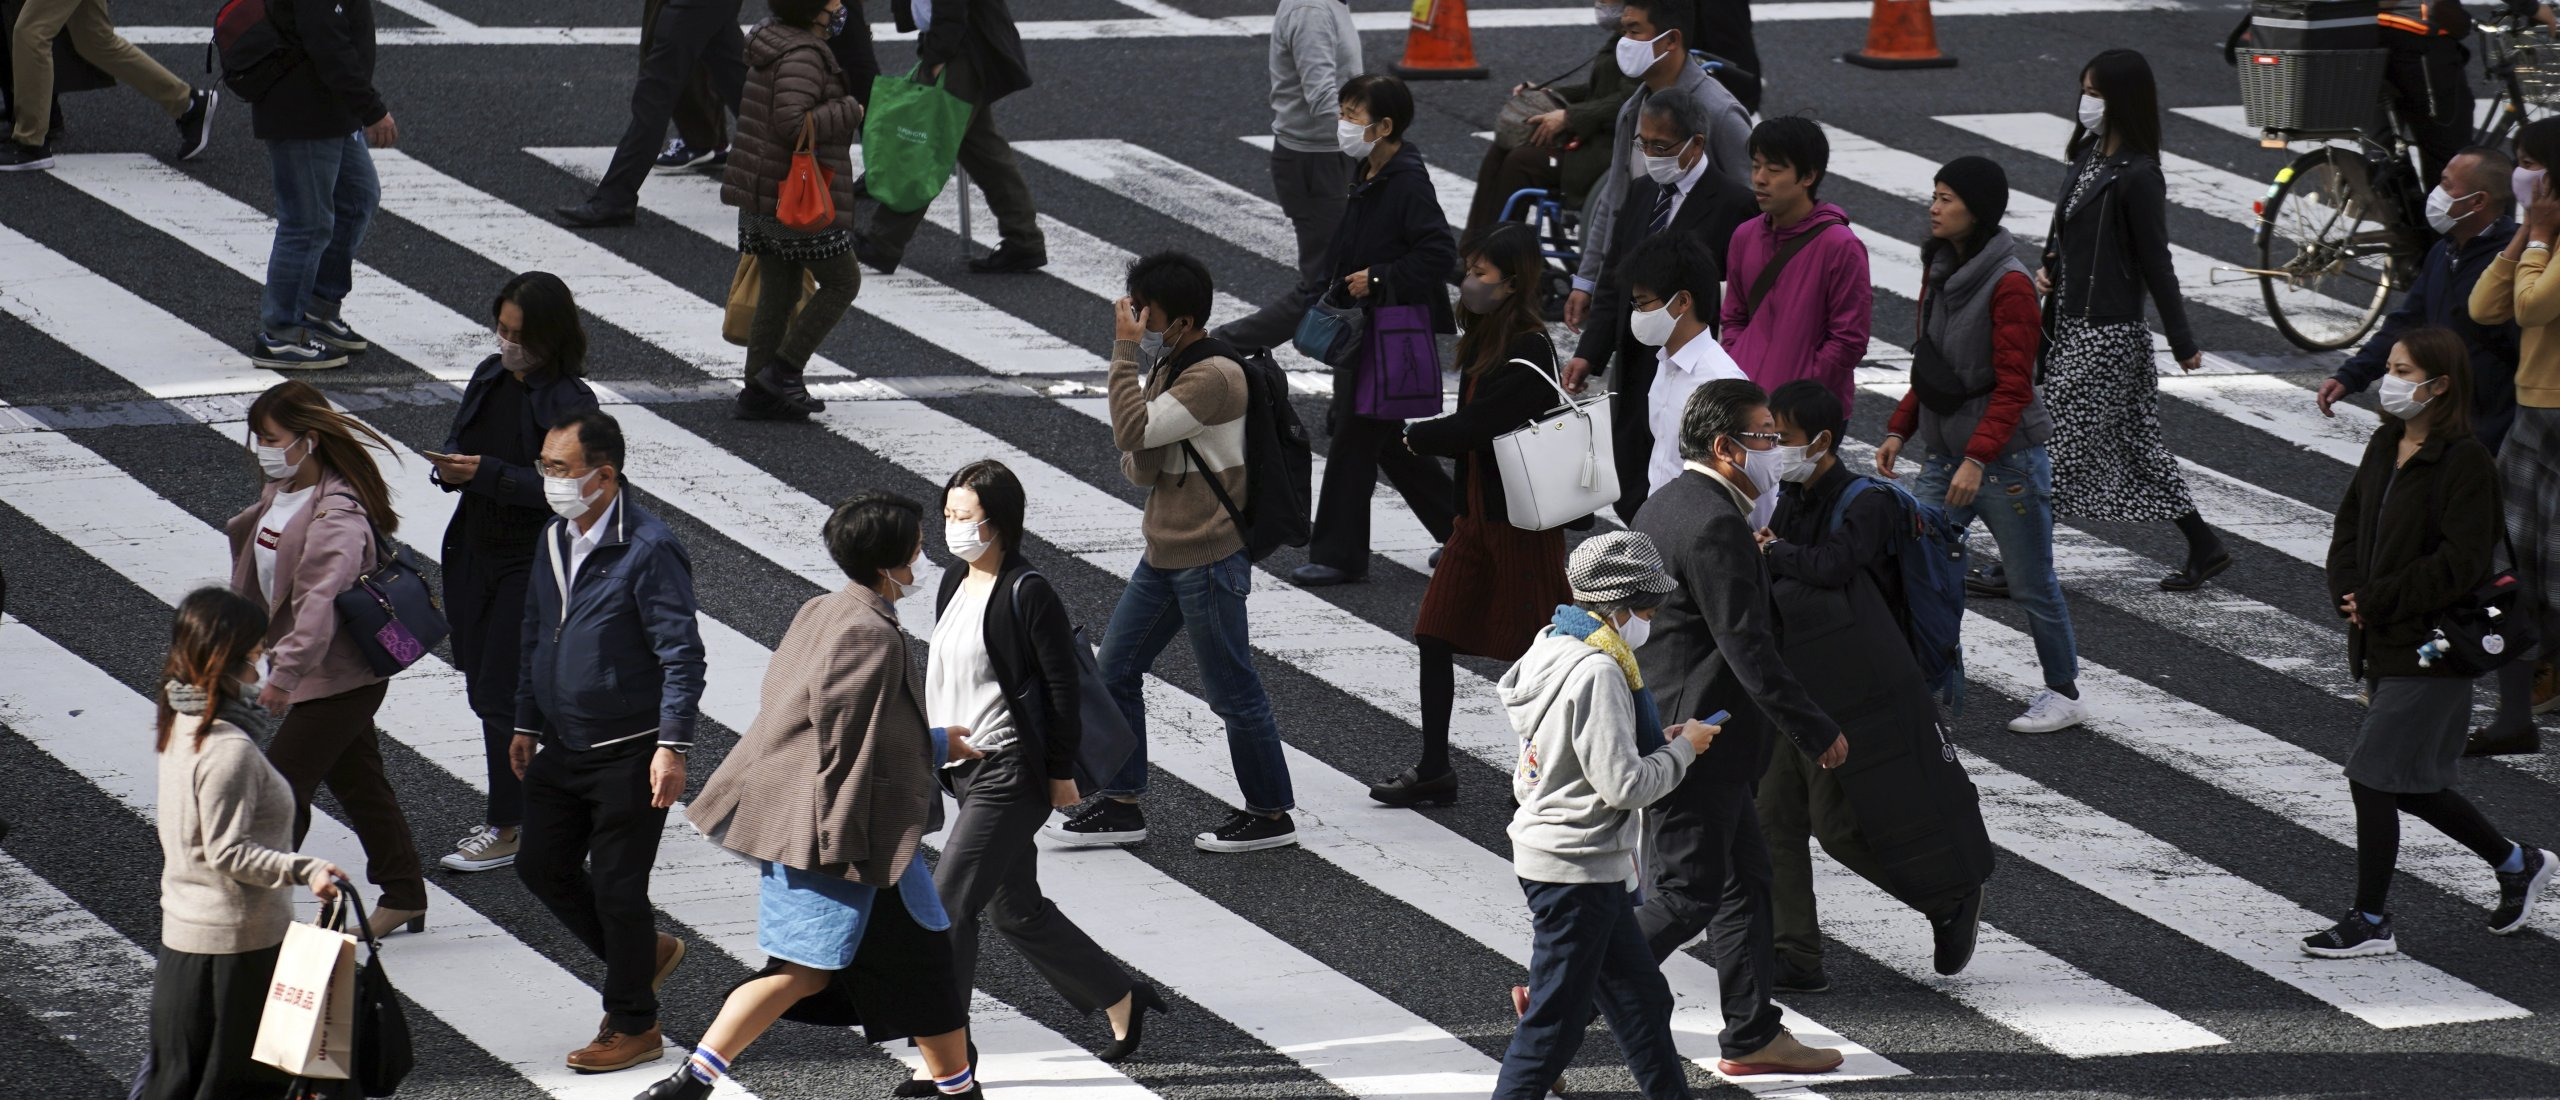 People wearing protective masks to help curb the spread of the coronavirus walk on a pedestrian crossing in Tokyo, Japan, Nov. 9, 2020. (AP Photo)